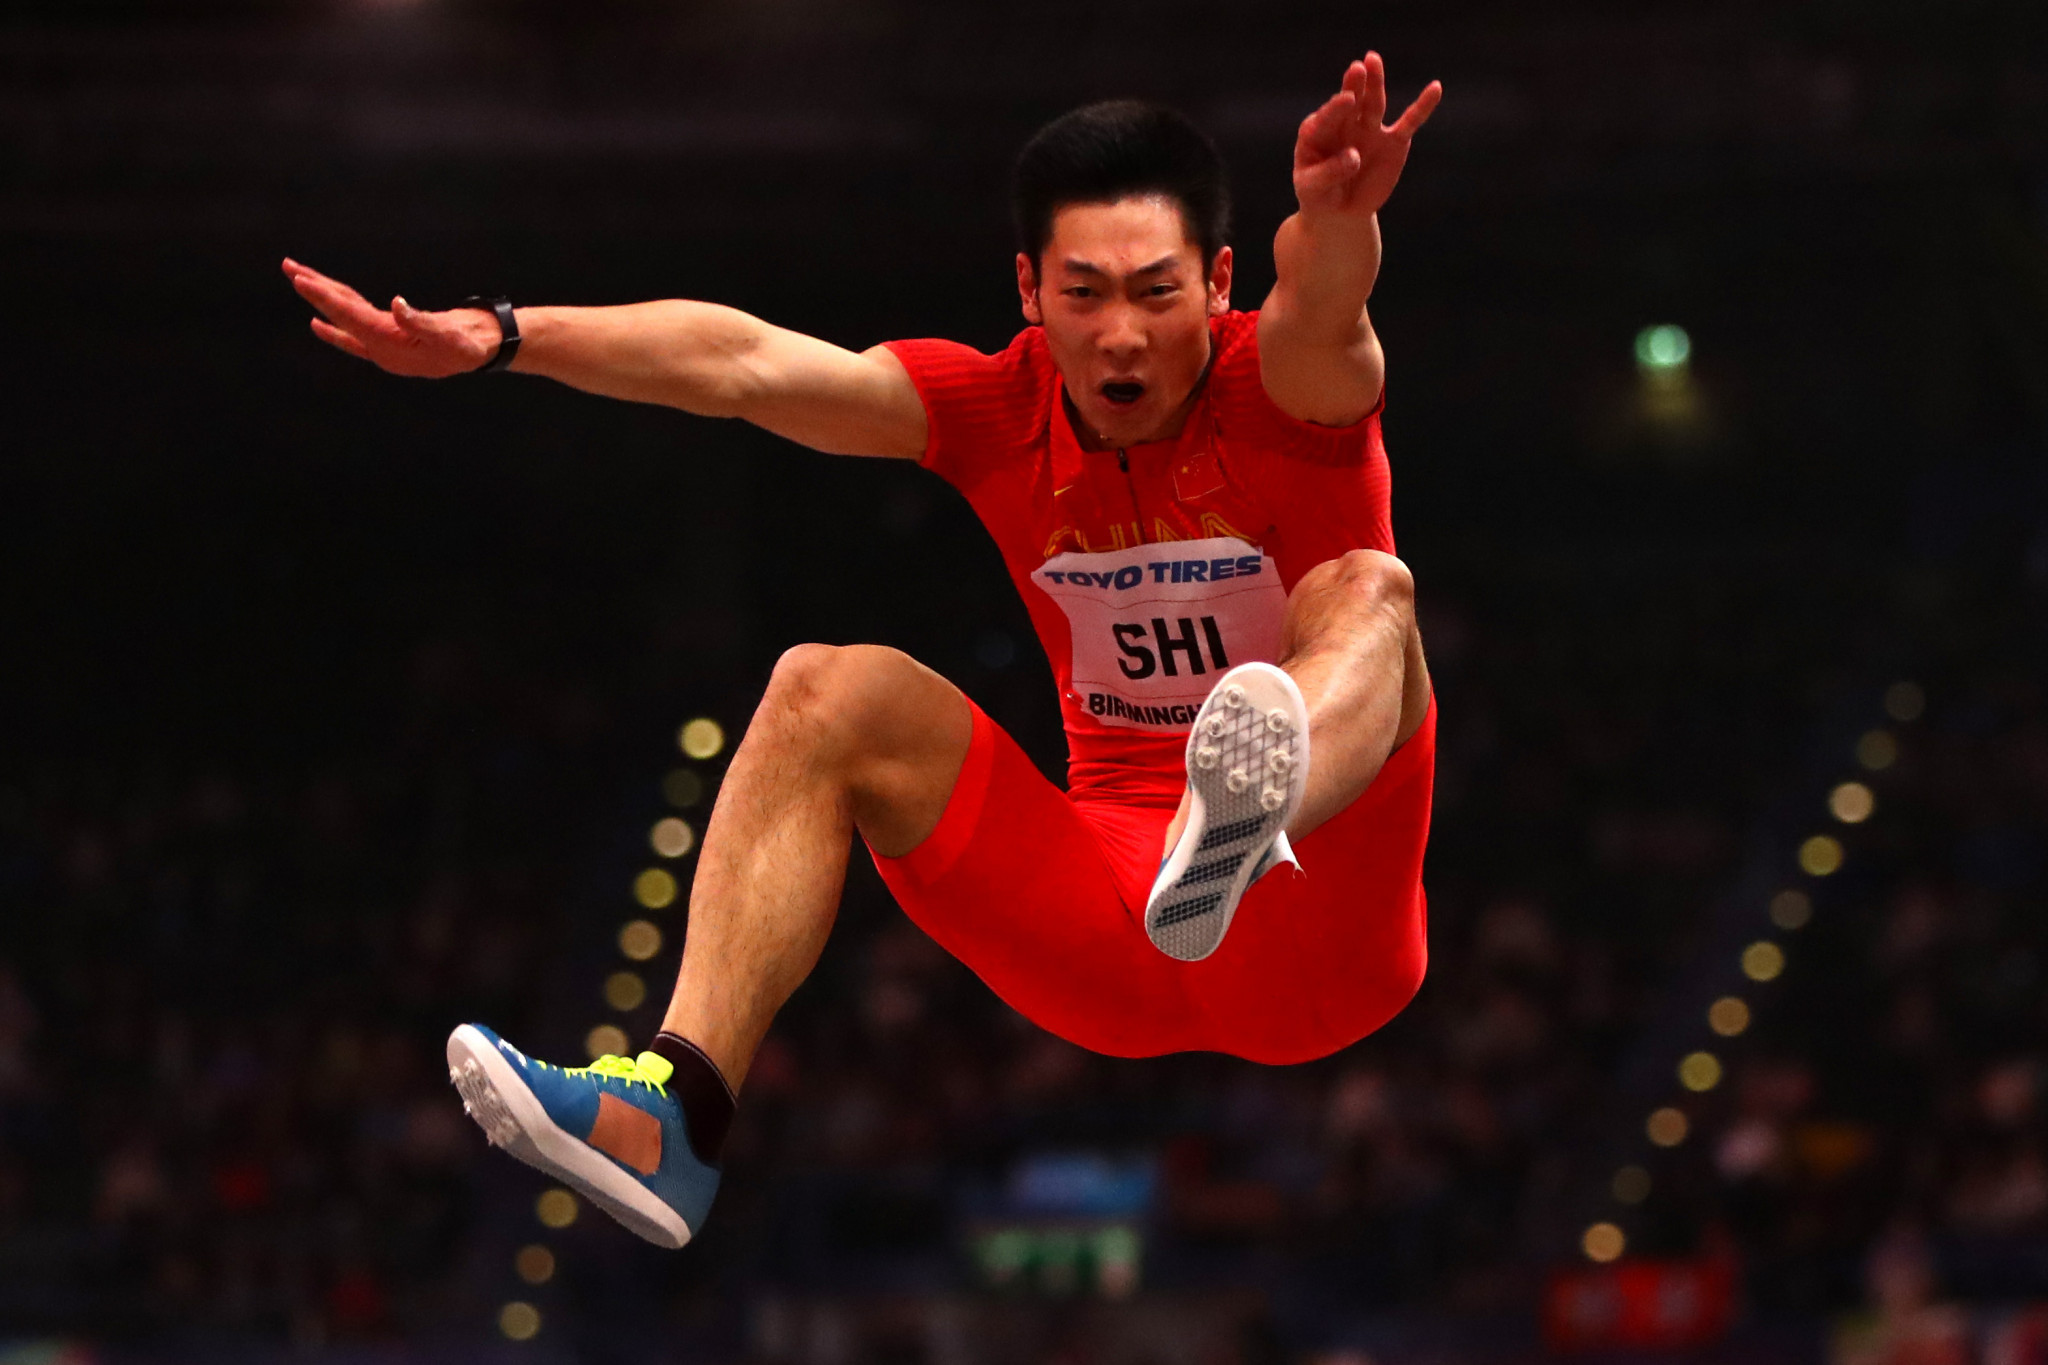 Chinese long jumper Shi takes positives after Tokyo 2020 postponement